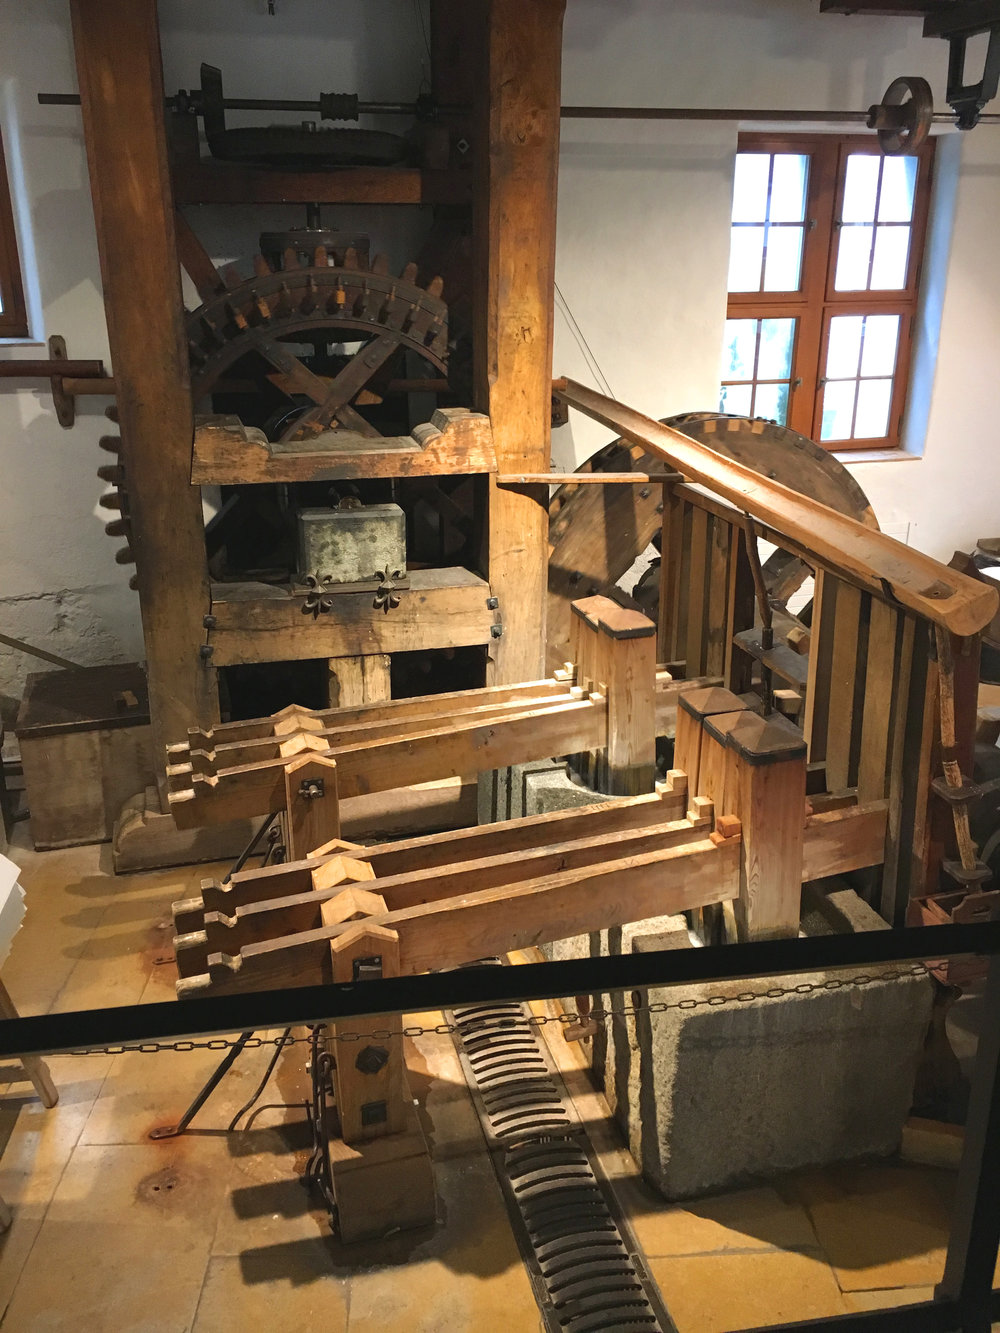 The mighty wooden stamping units pounding the rag pulp, driven by the waterwheel's action